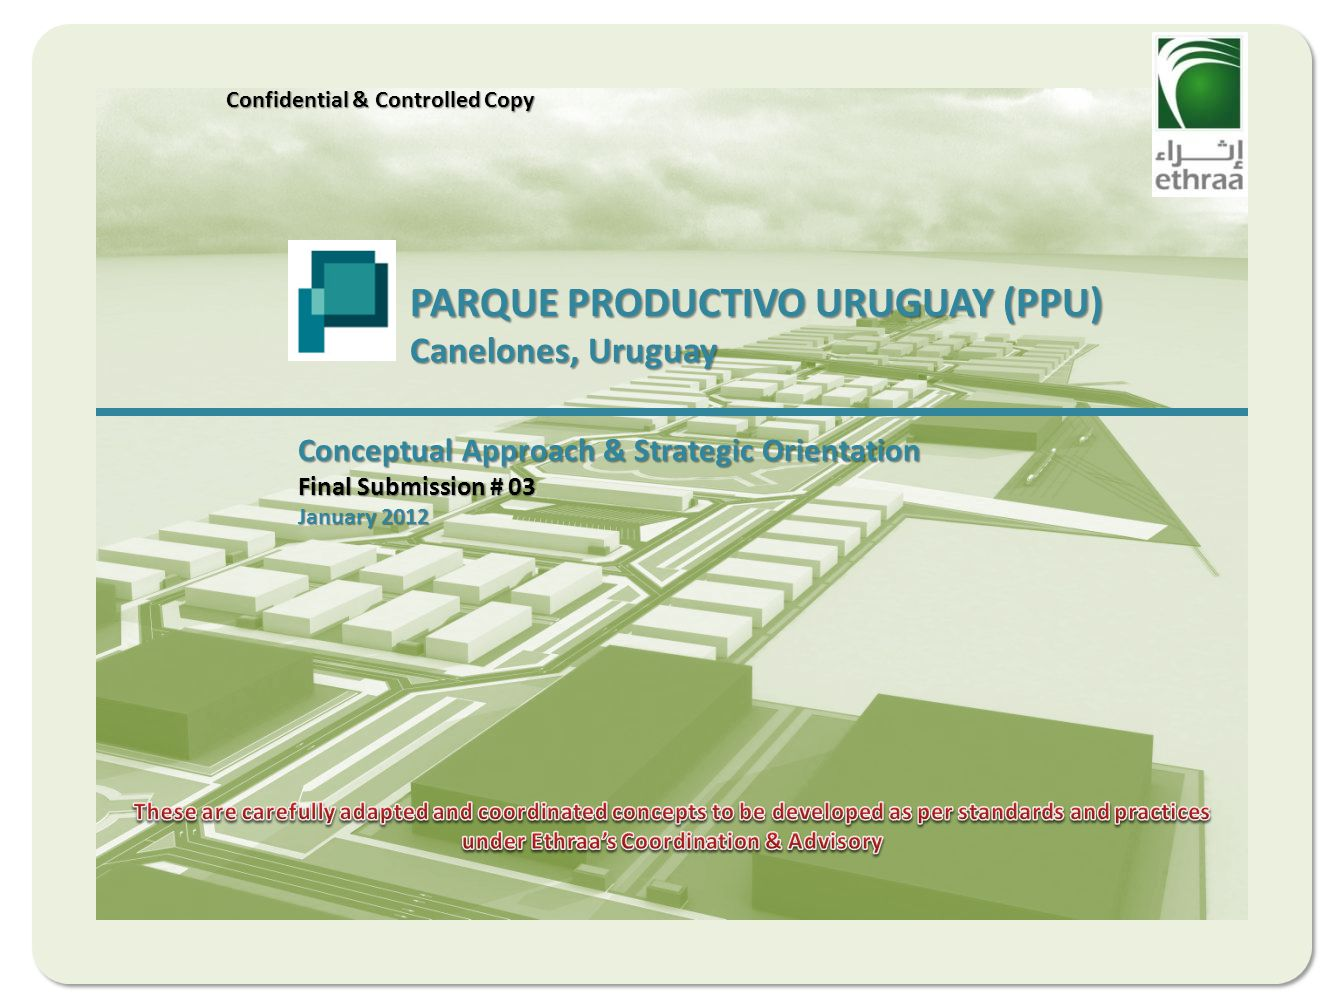 PARQUE PRODUCTIVO URUGUAY (PPU) Canelones, Uruguay Conceptual Approach & Strategic Orientation Final Submission # 03 January 2012 Confidential & Controlled Copy